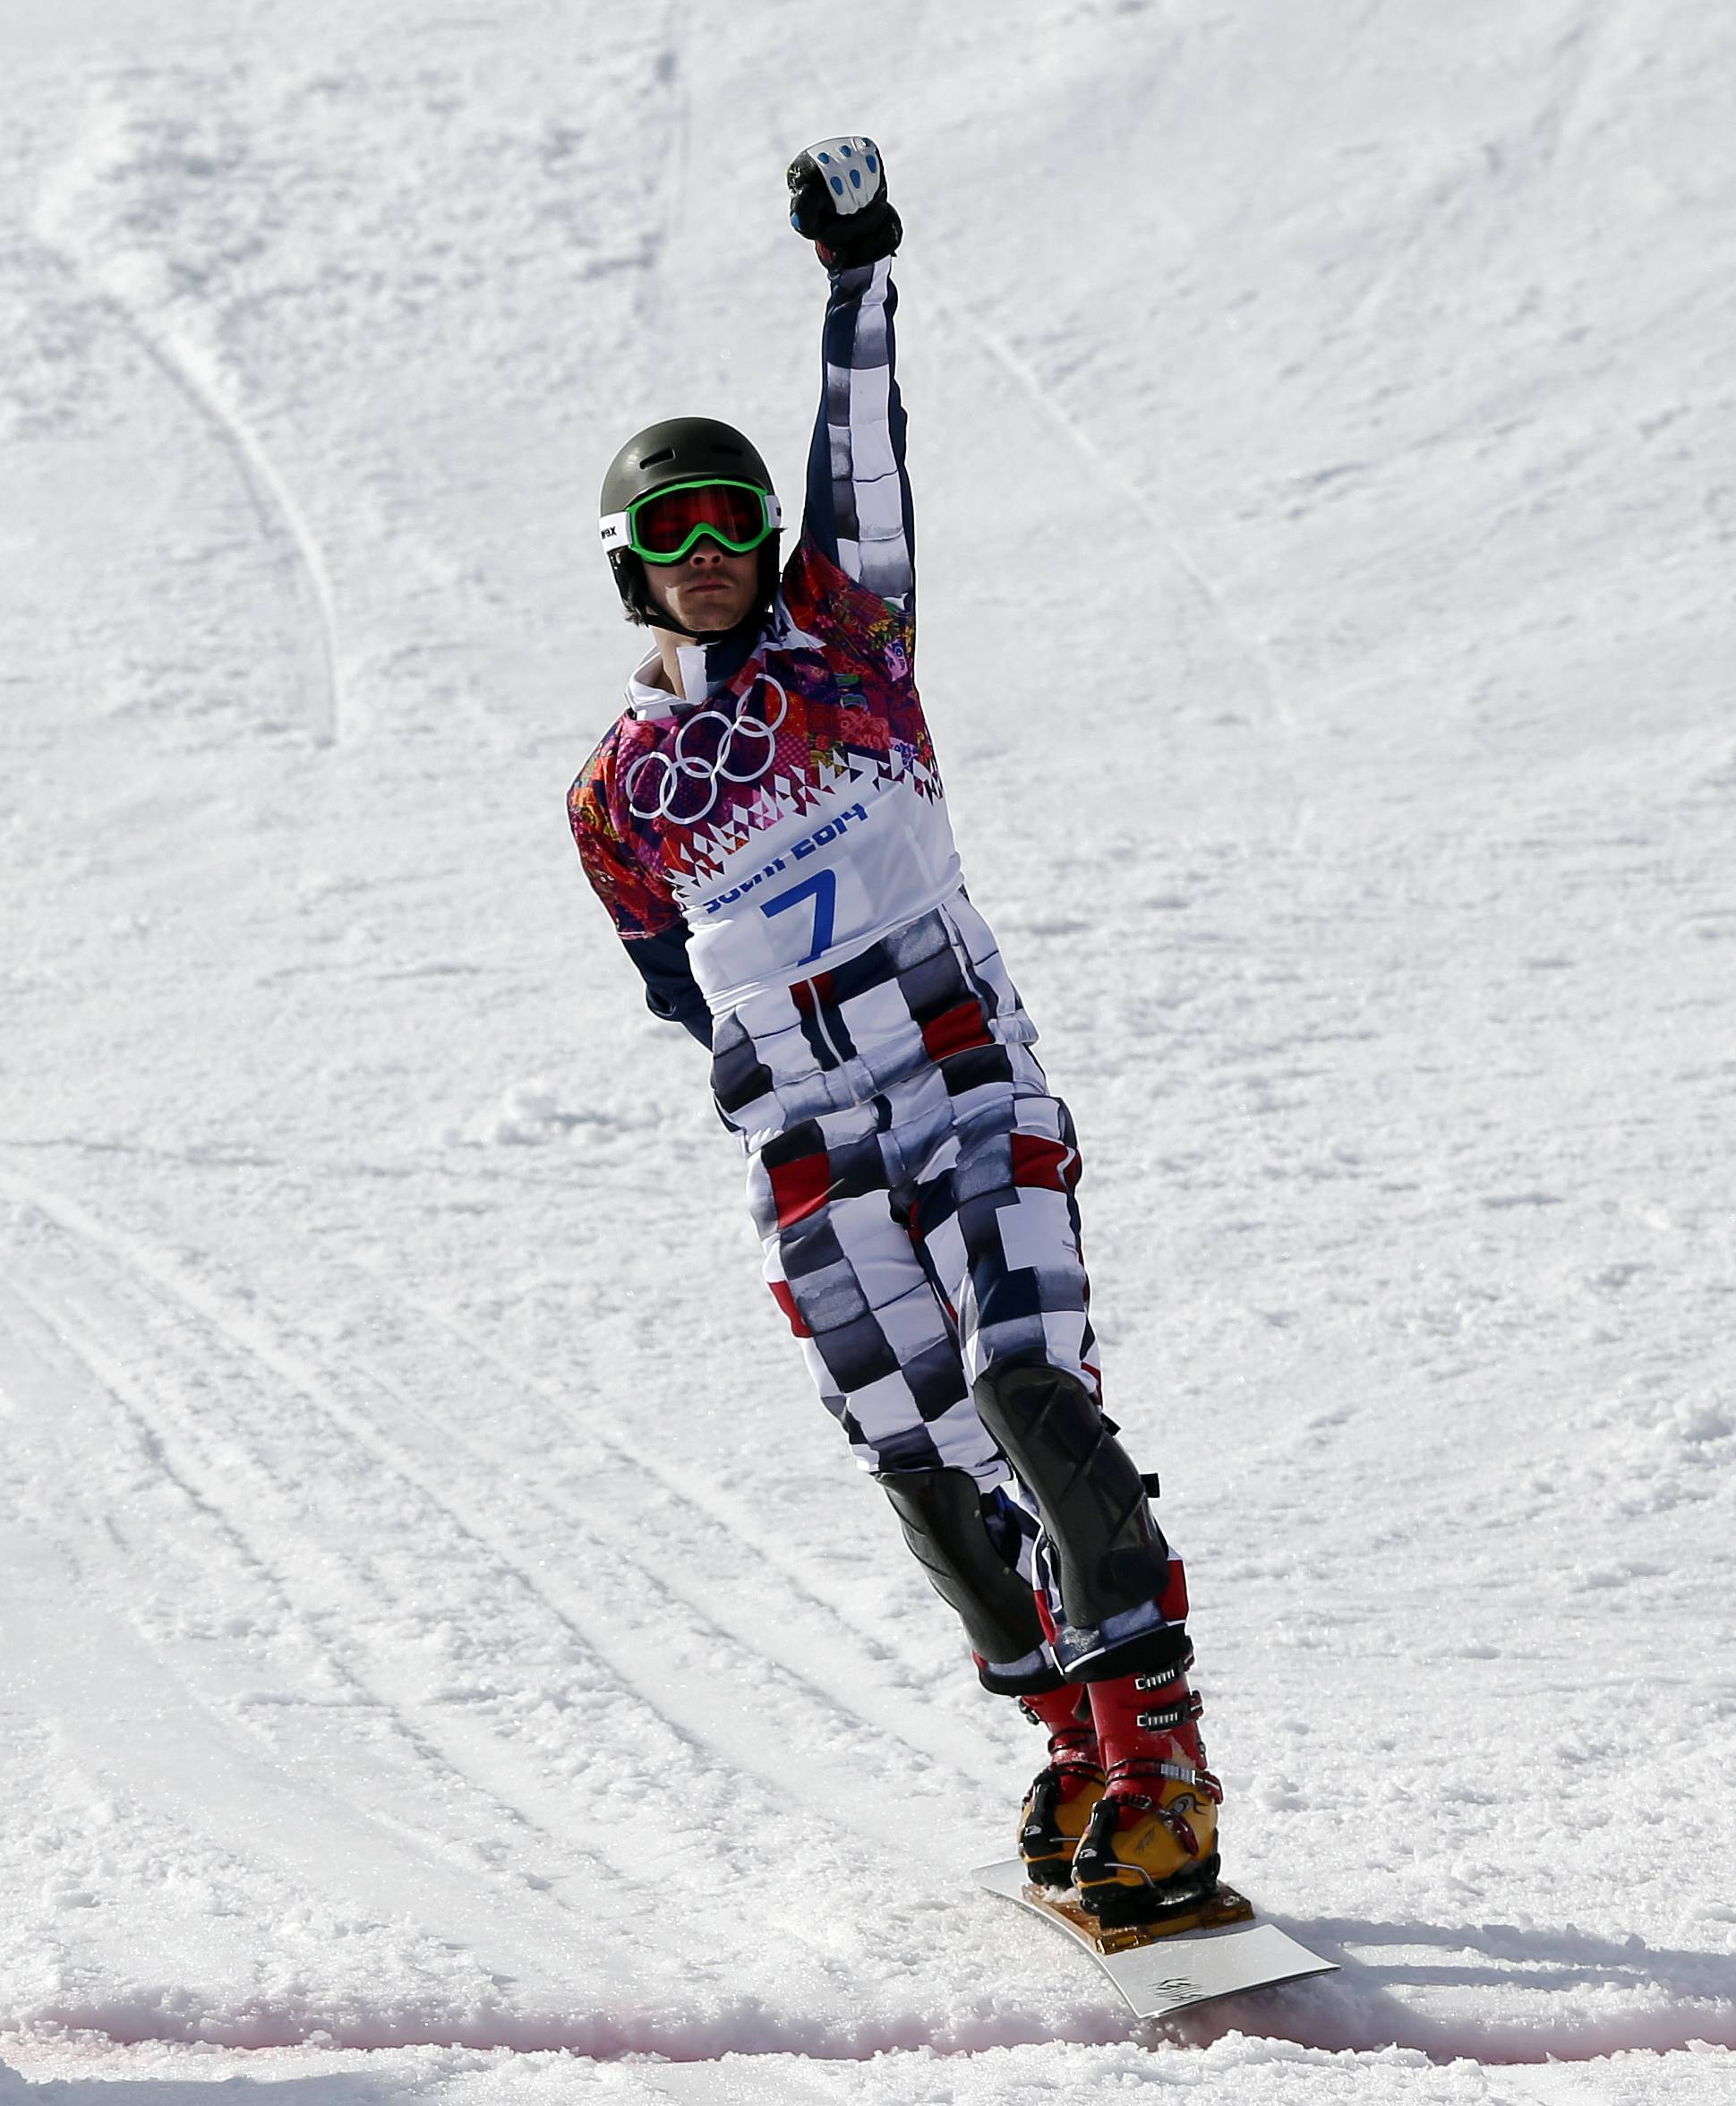 Russia's Vic Wild celebrates Wednesday as he crosses the line to win the gold medal in the men's snowboard parallel giant slalom final at the Rosa Khutor Extreme Park during the 2014 Winter Olympics in Krasnaya Polyana, Russia.